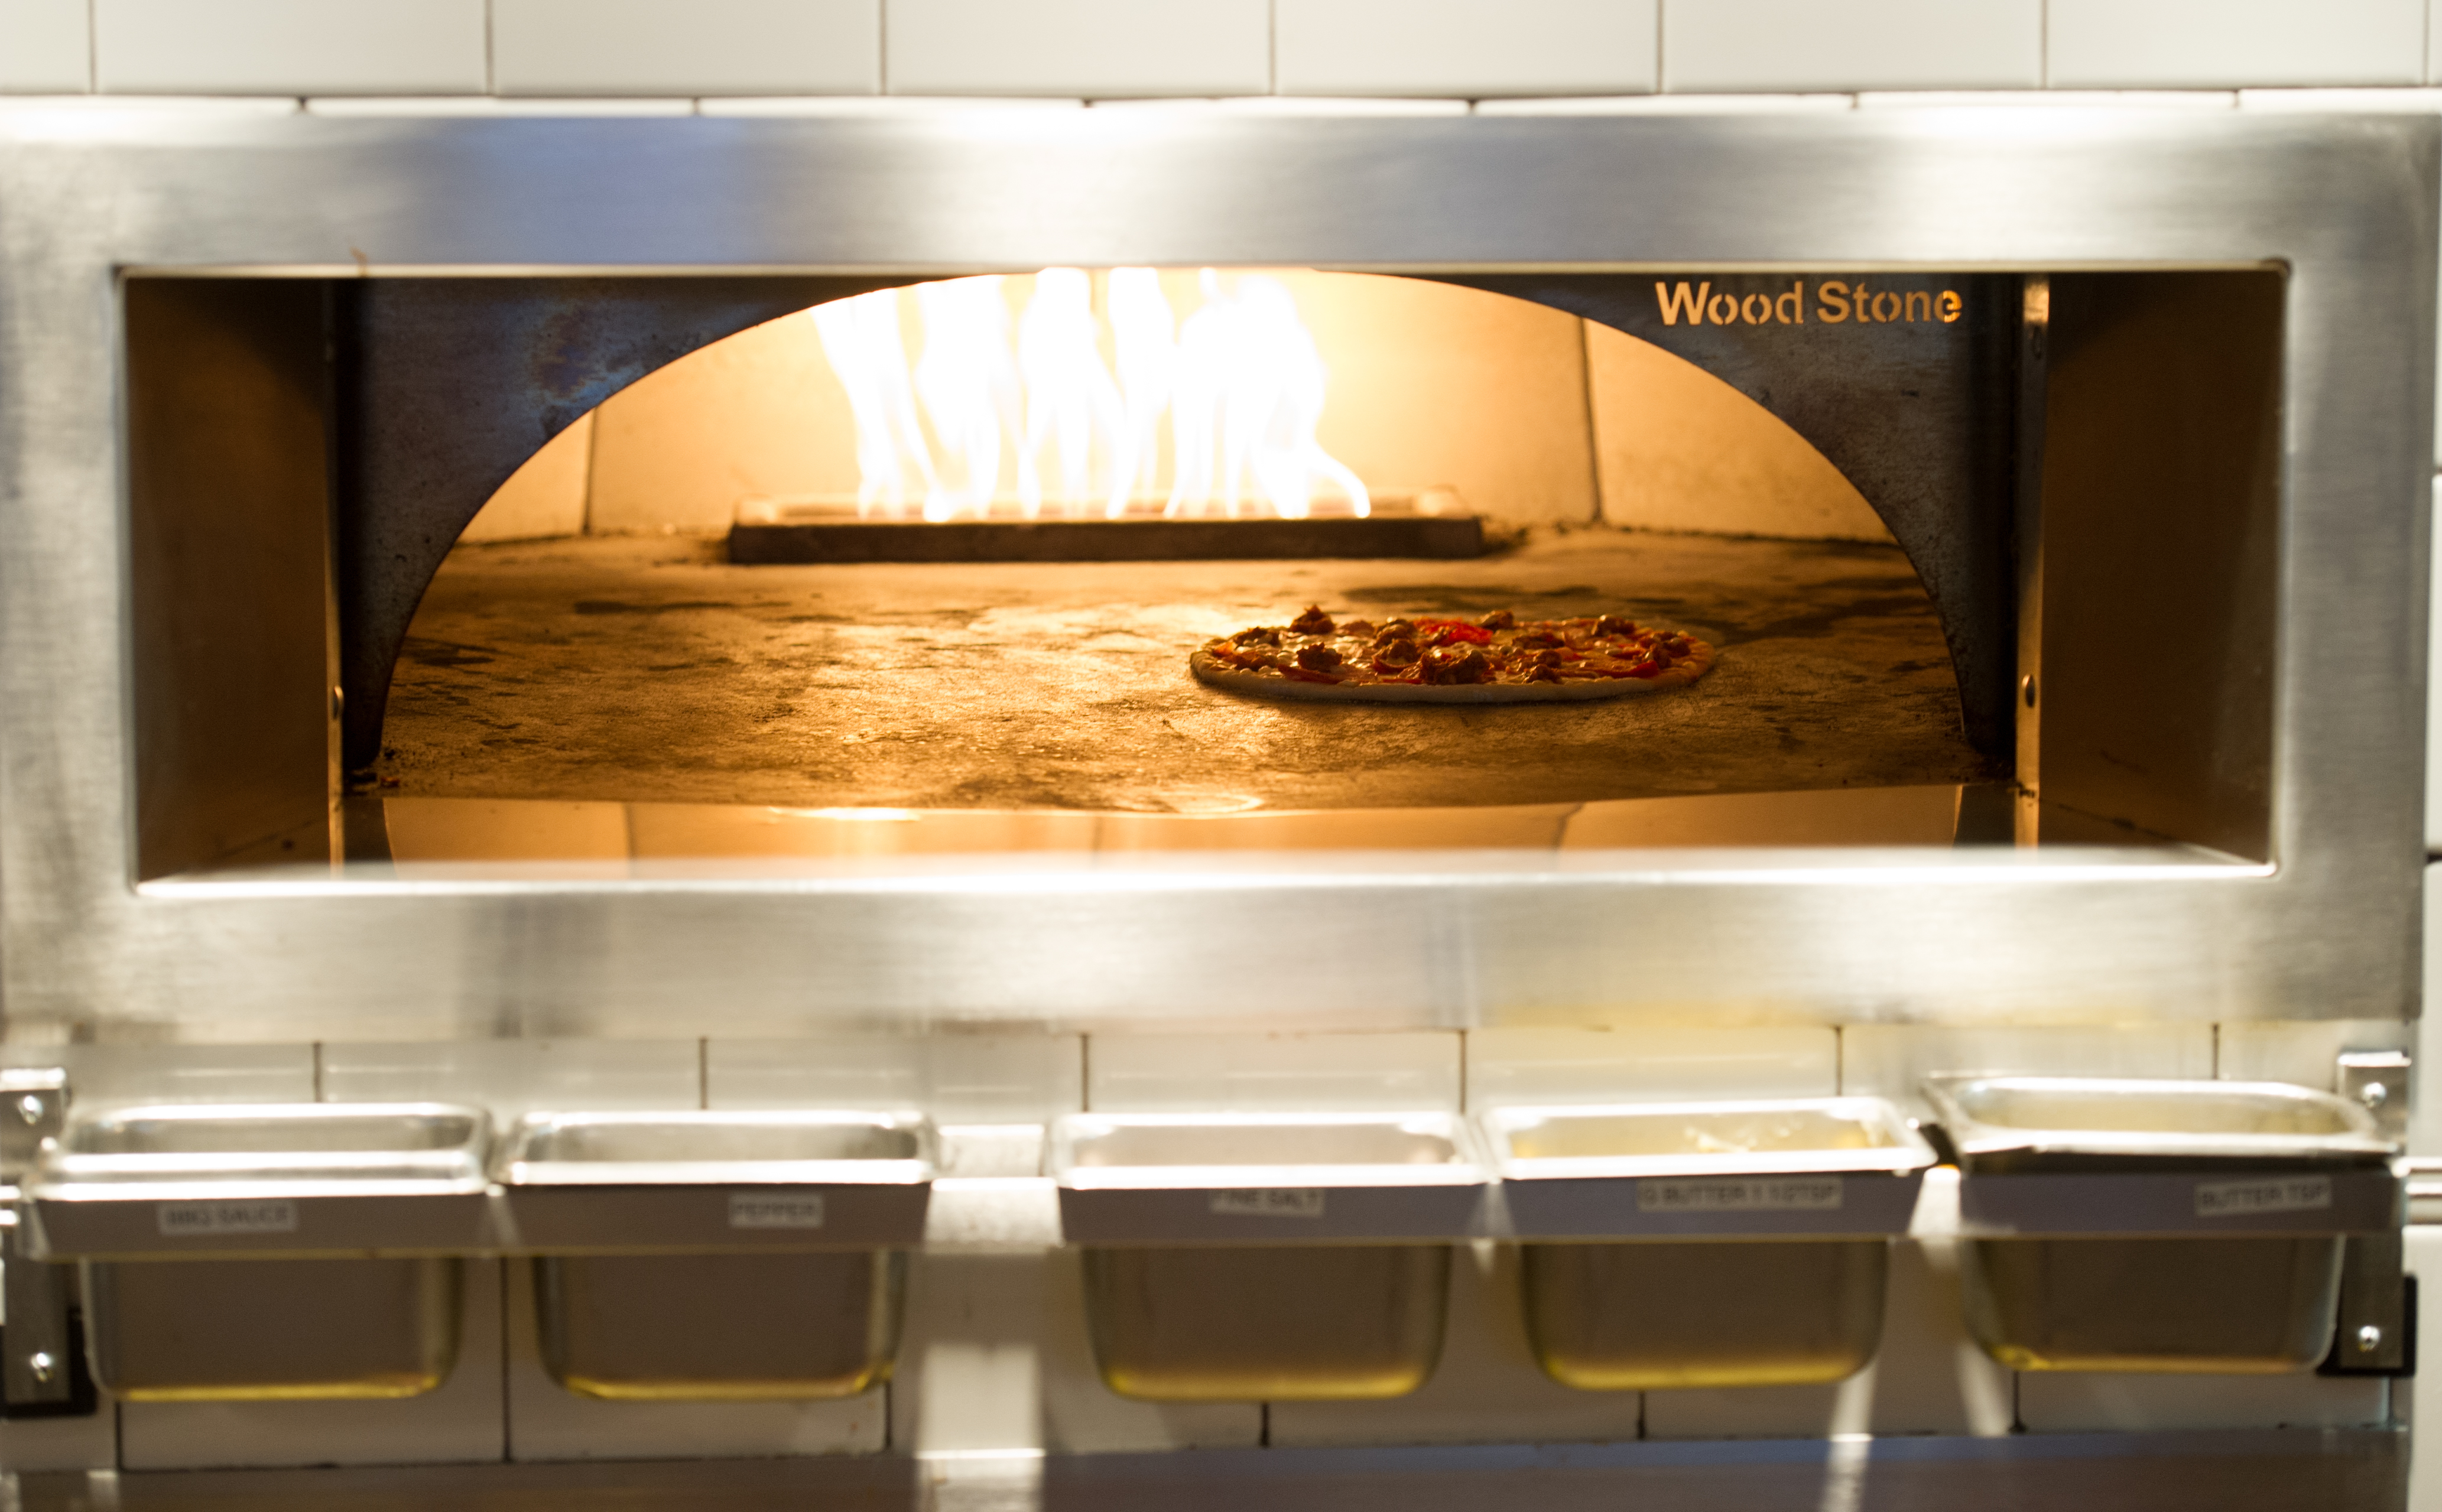 Image: Wood Stove oven at Earls